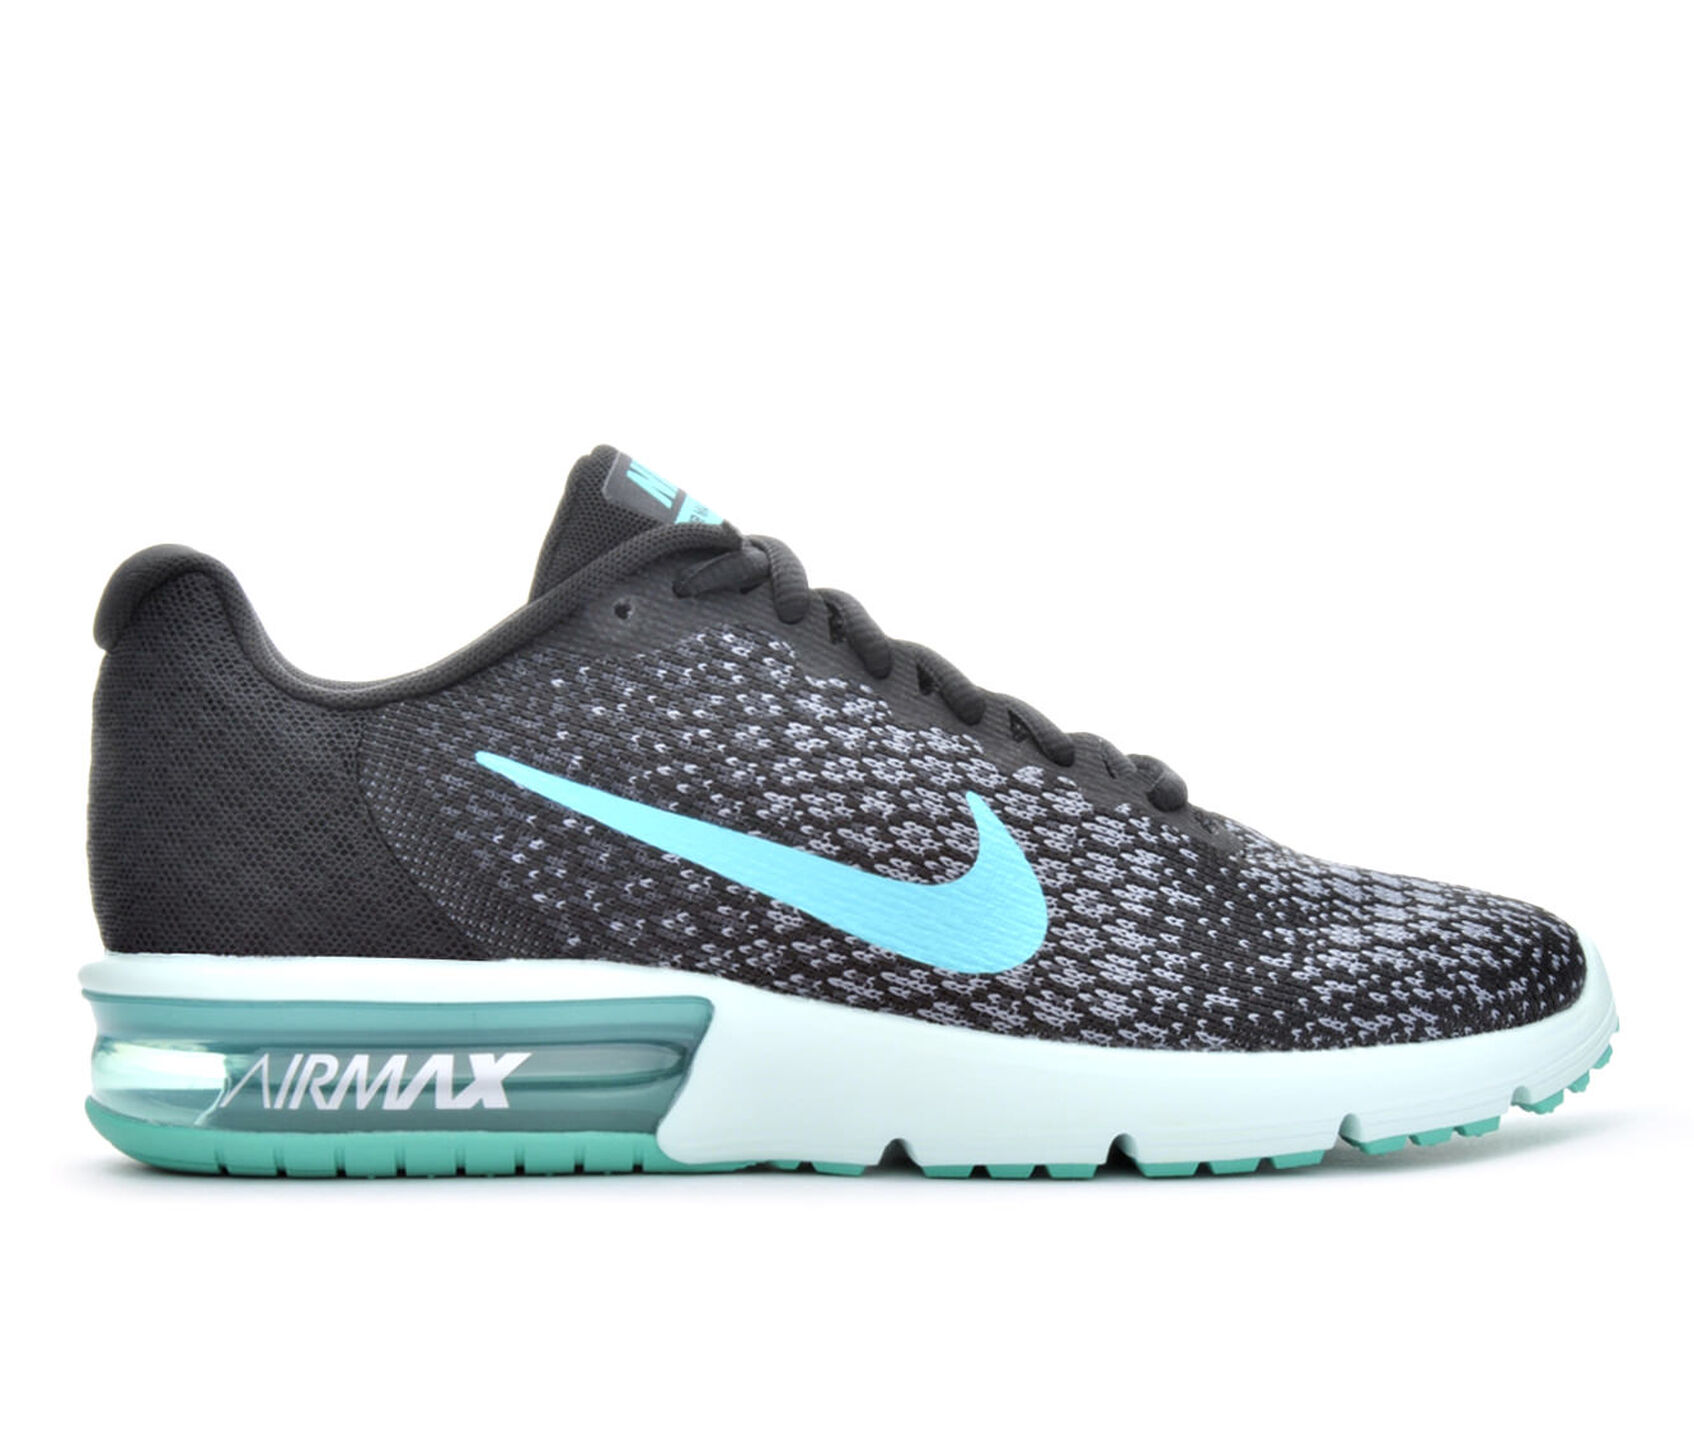 Buy Extra Shoe Lace From Nike